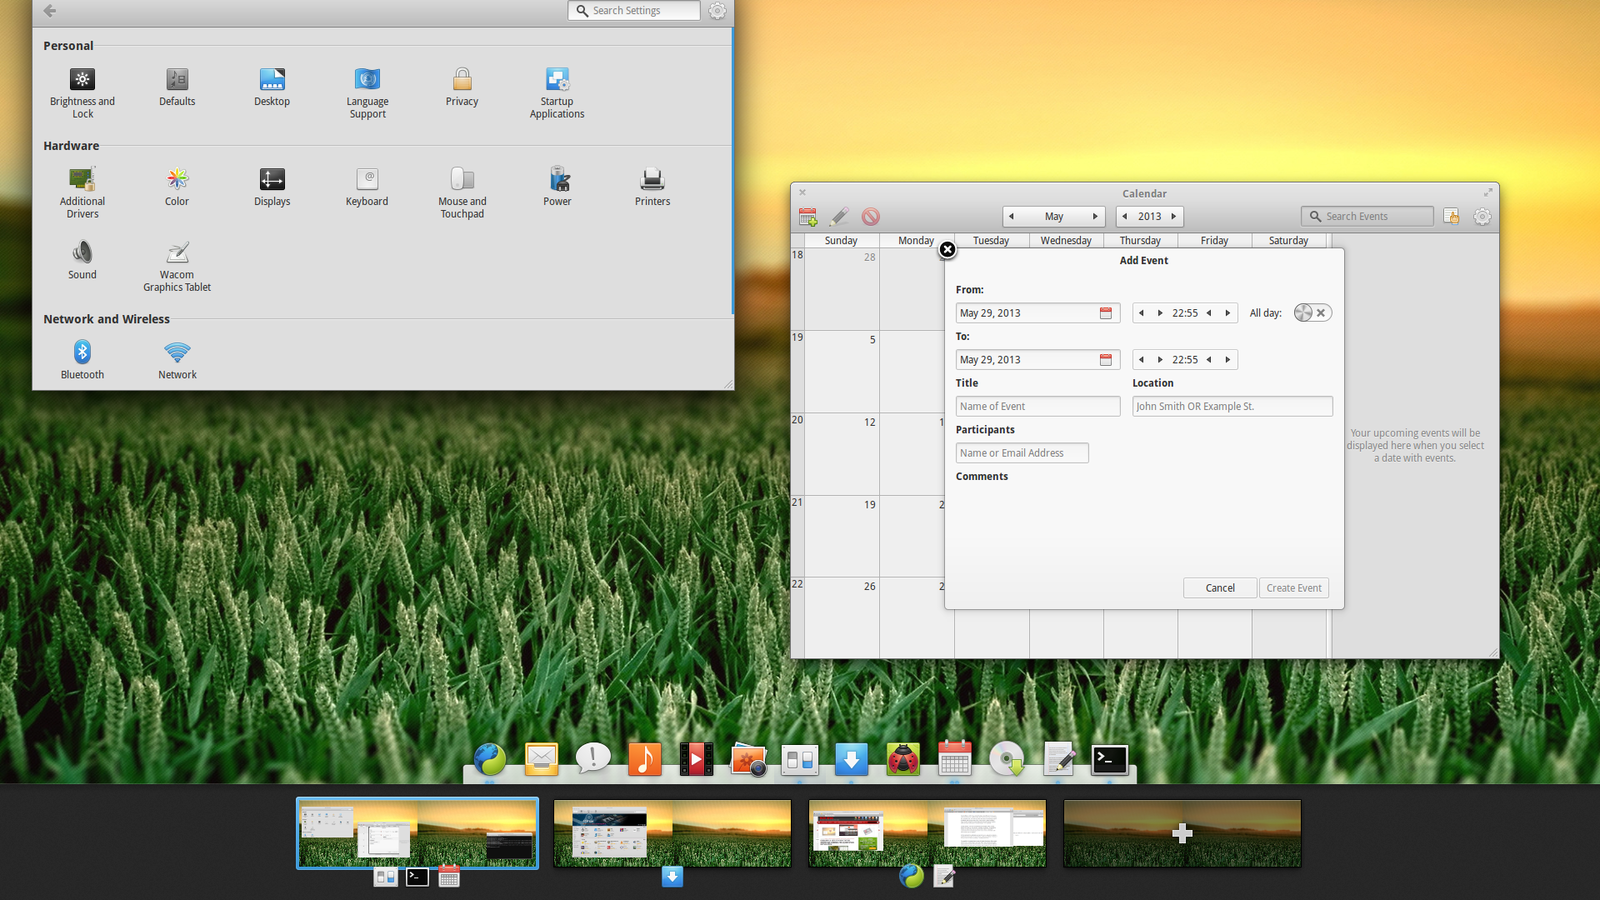 Elementary os luna beta2 - Workspace